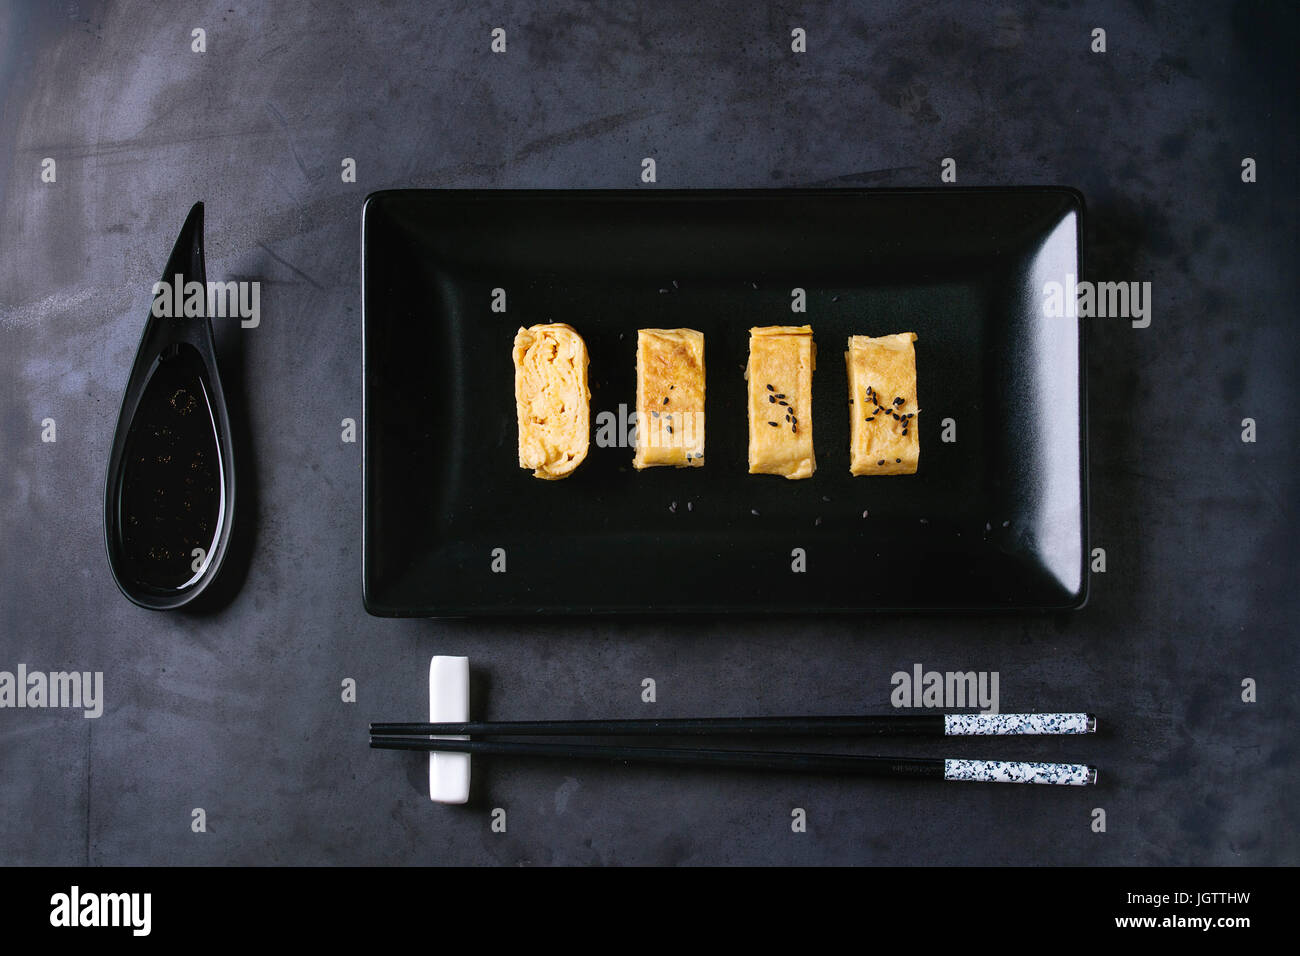 Japanese Rolled Omelette Tamagoyaki sliced with black seasame seeds and soy sauce, served in black square ceramic - Stock Image